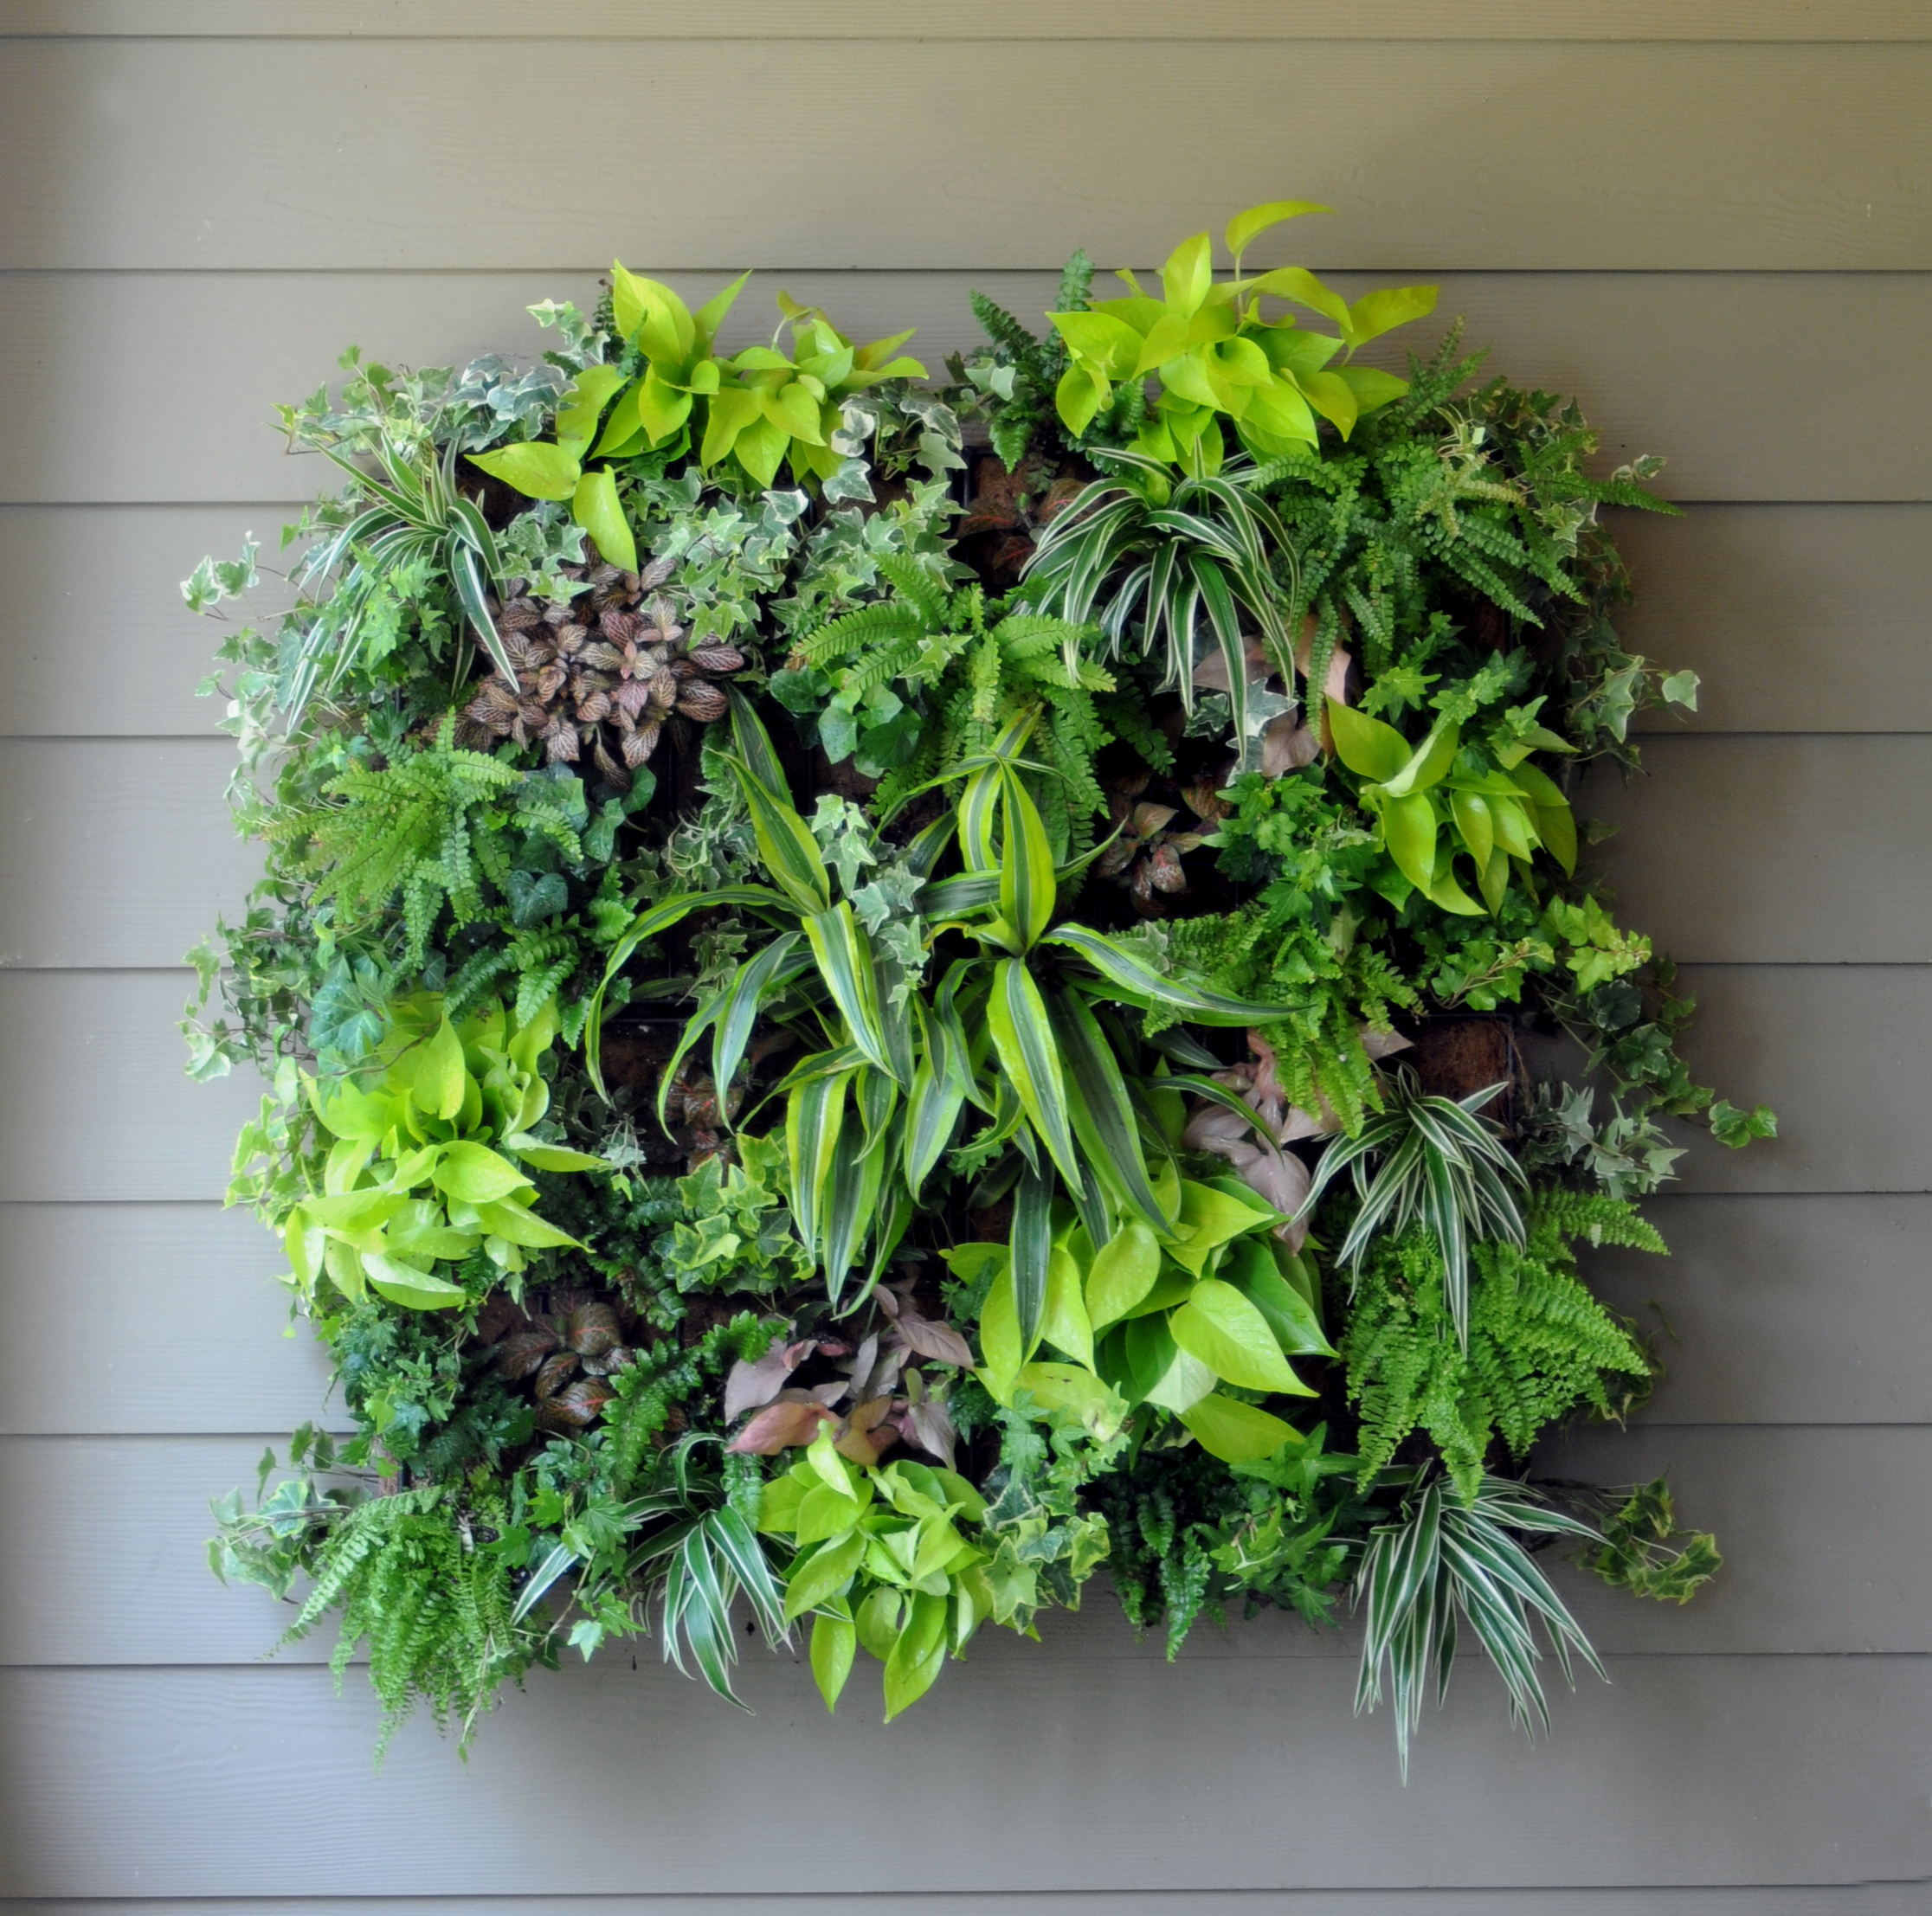 Vertical gardens city garden ideas for Vertical garden designs